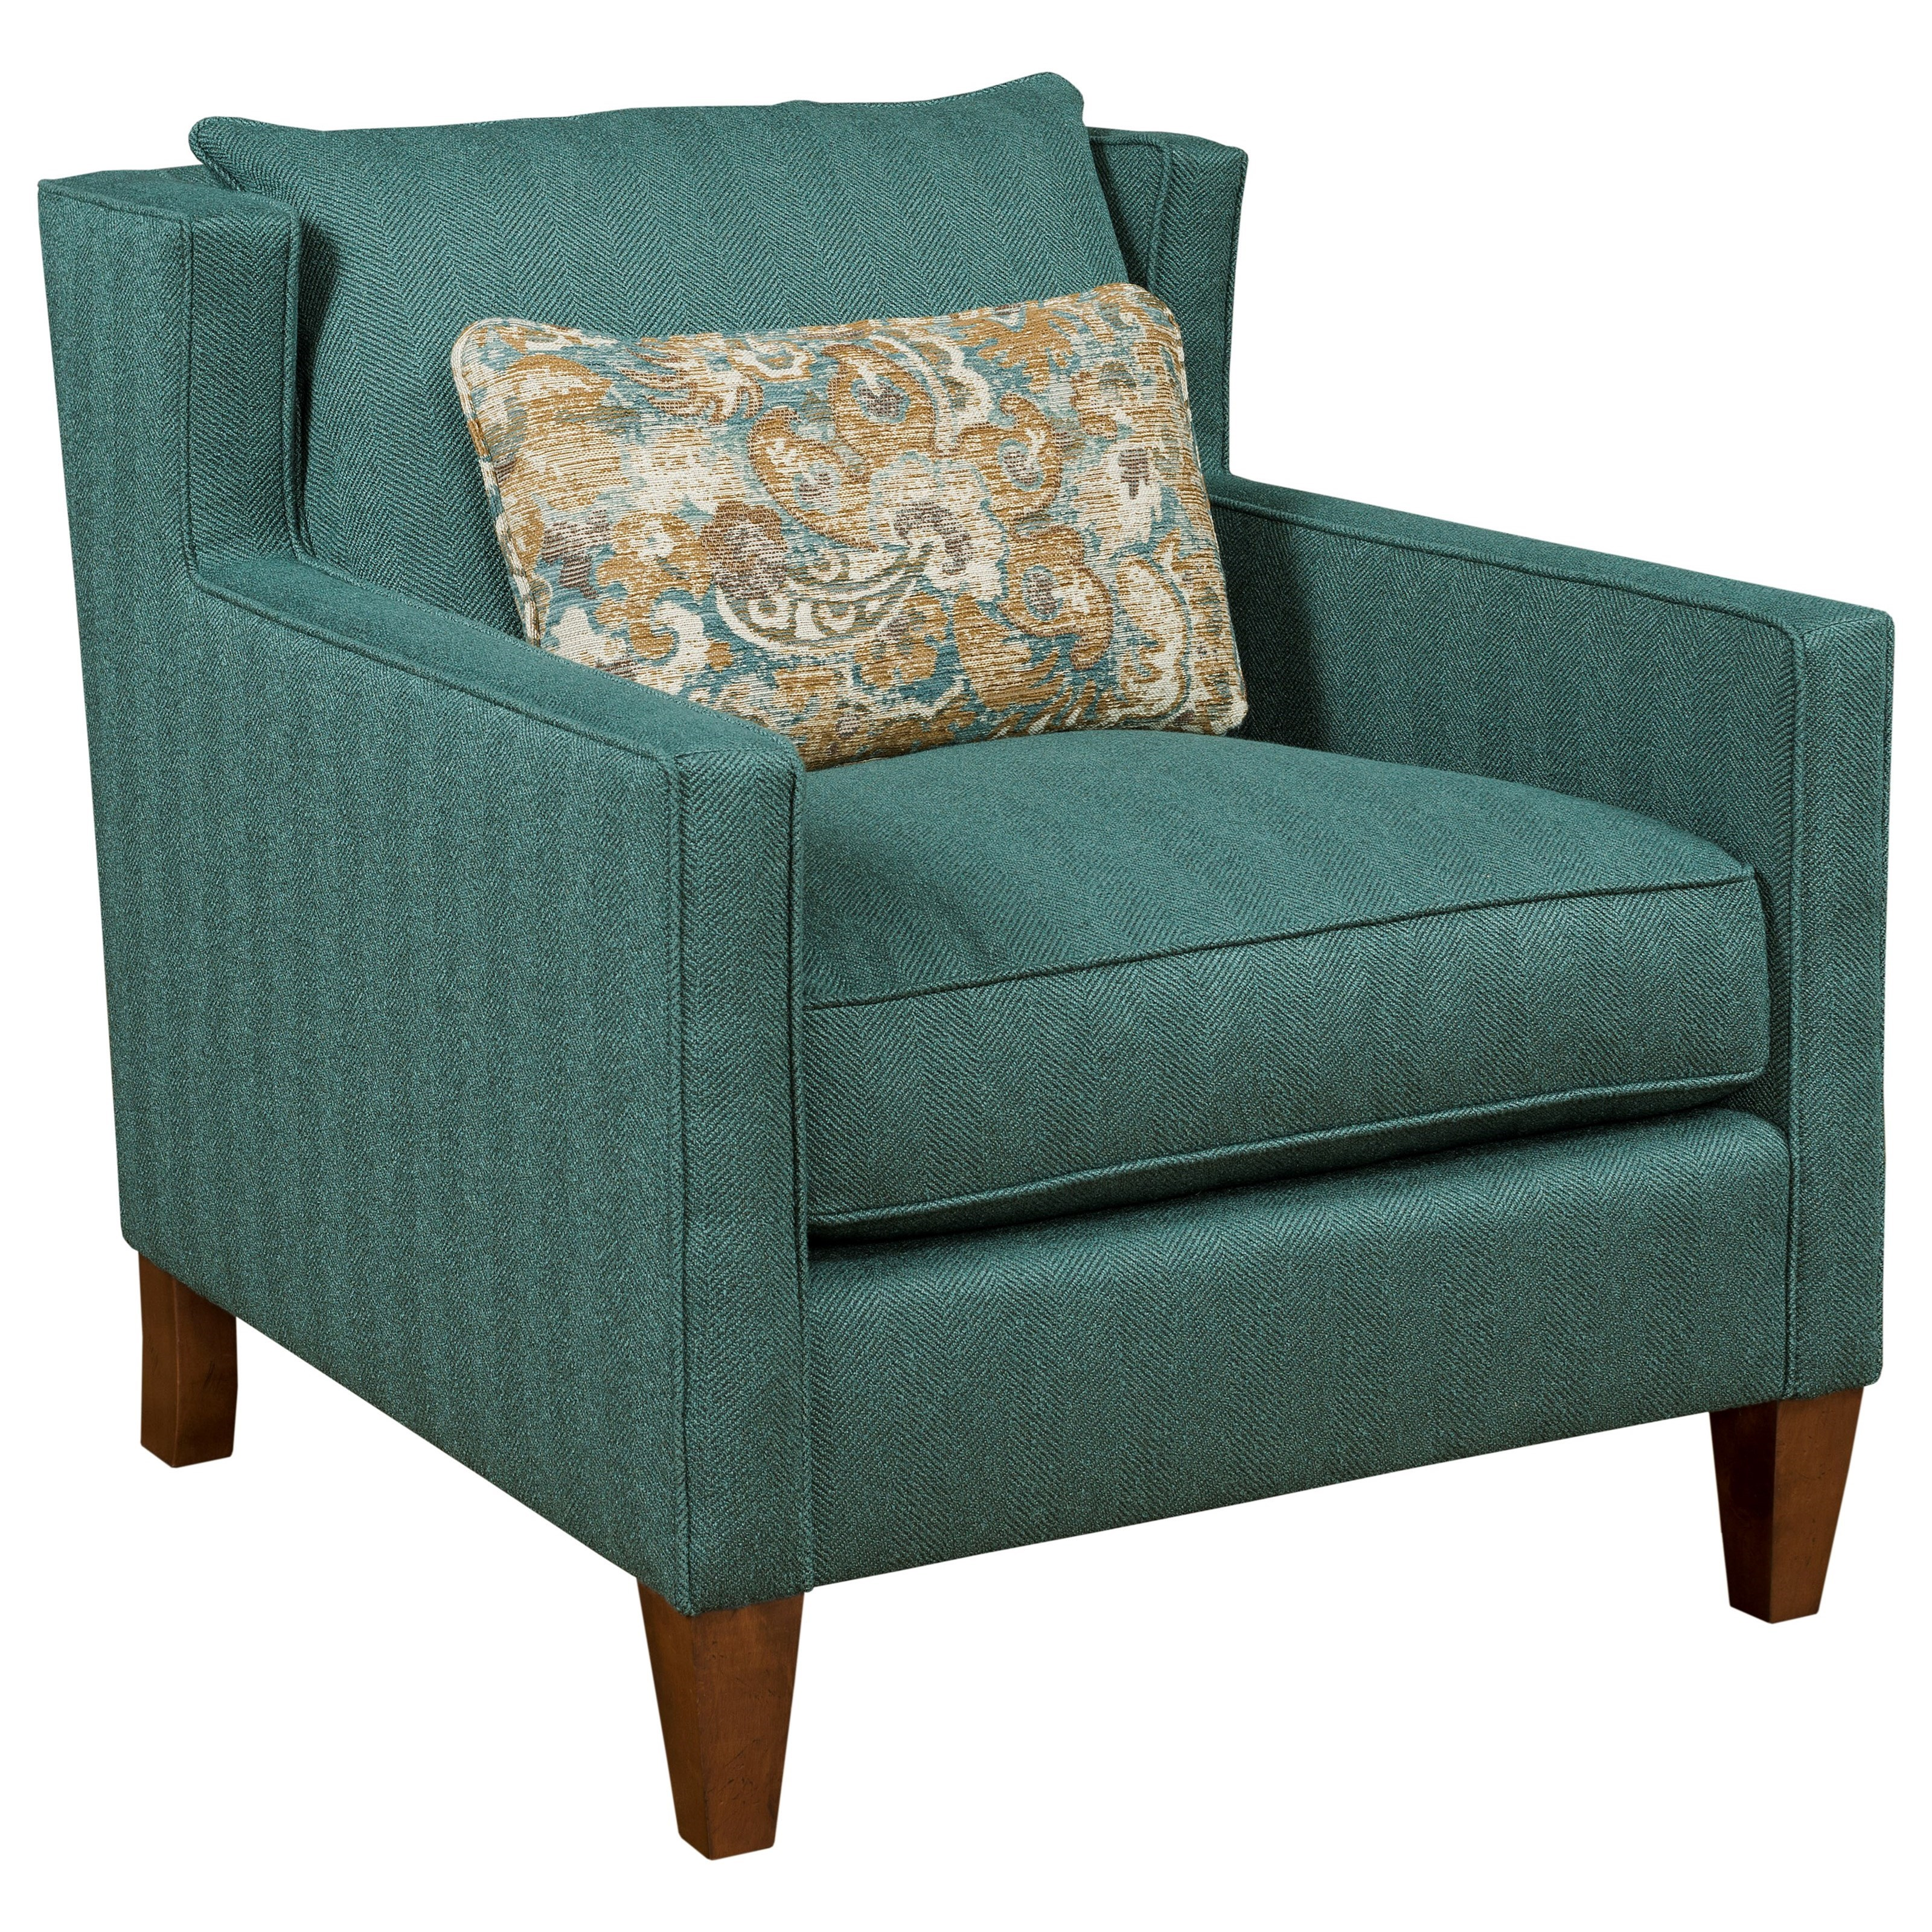 Alta Upholstered Chair by Kincaid Furniture at Lindy's Furniture Company